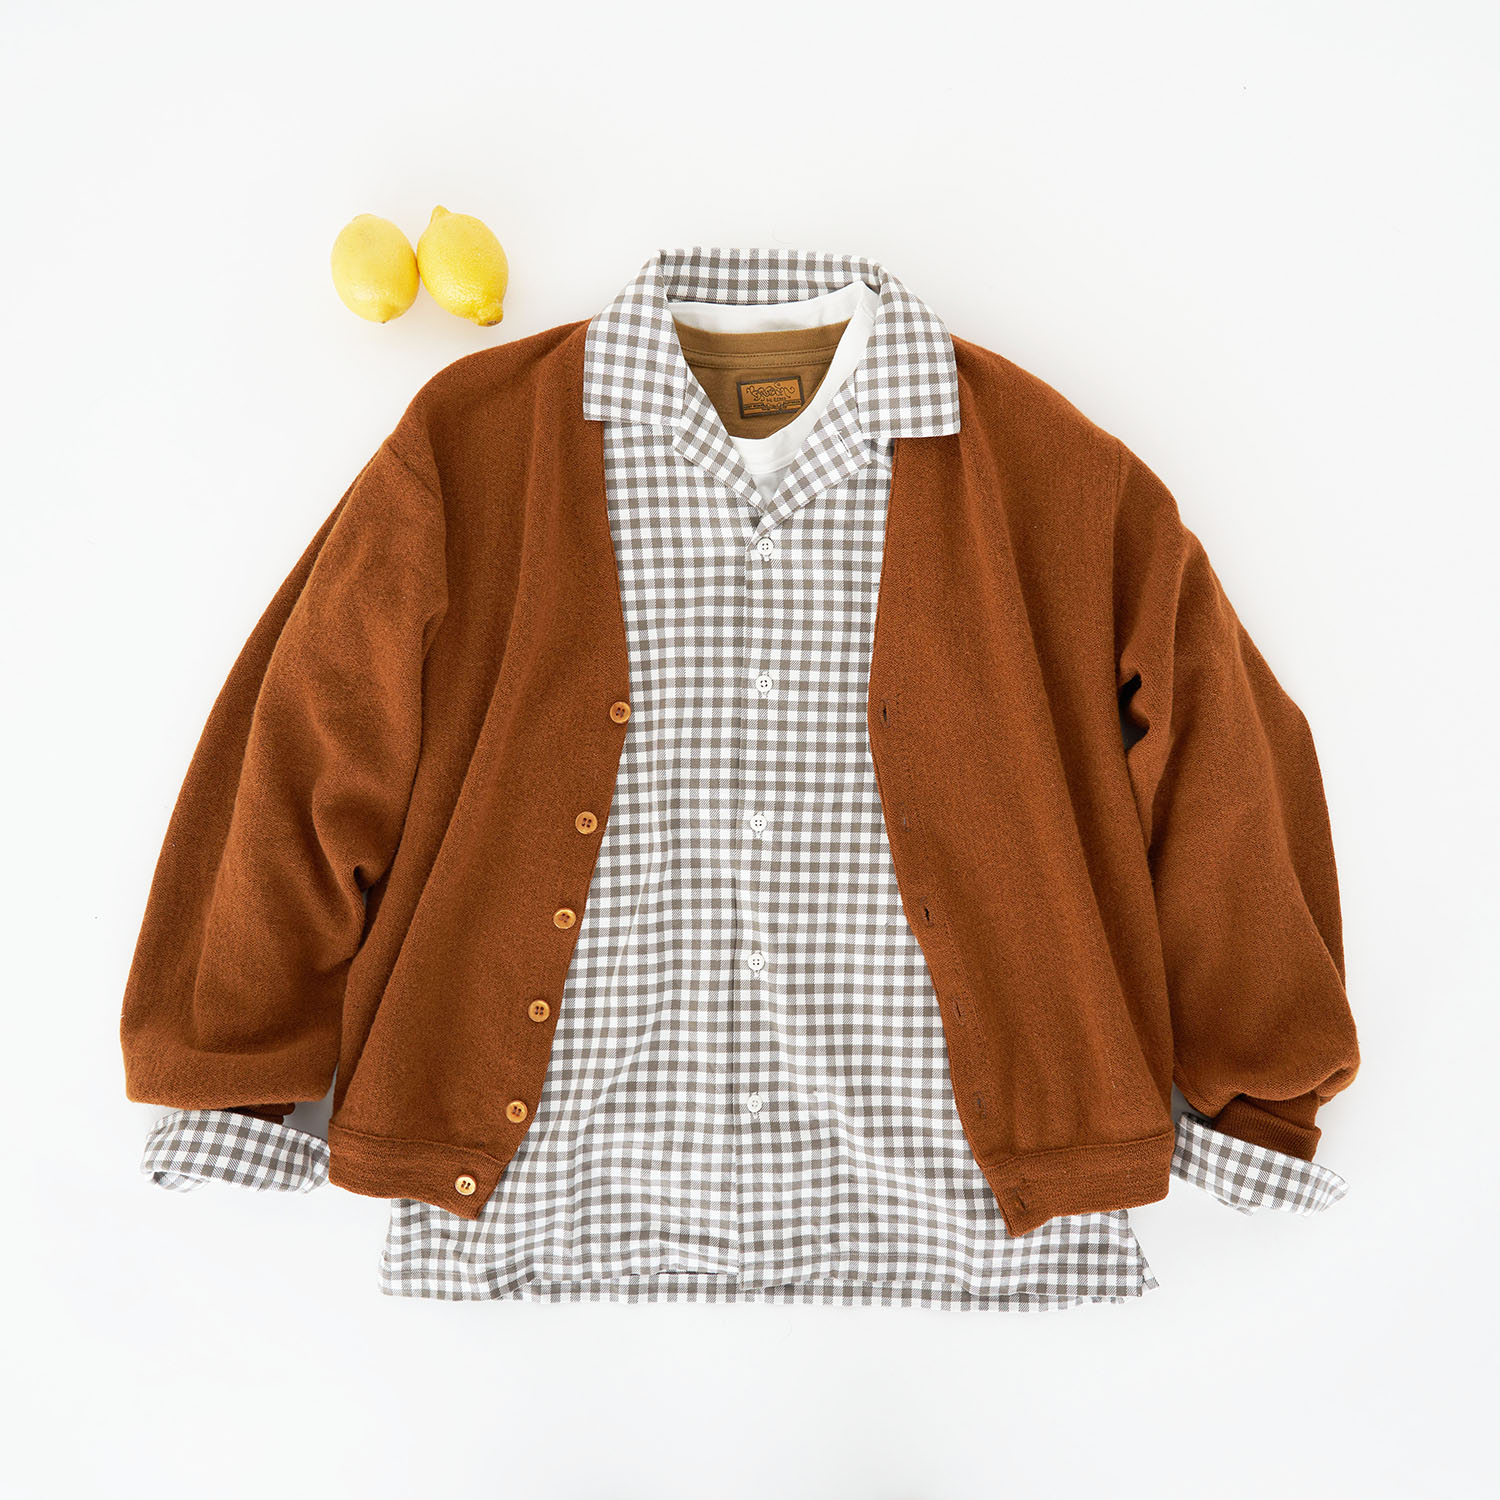 http://2-tacs.com/the_fhont_shop/img/opencollar_1_1.jpg